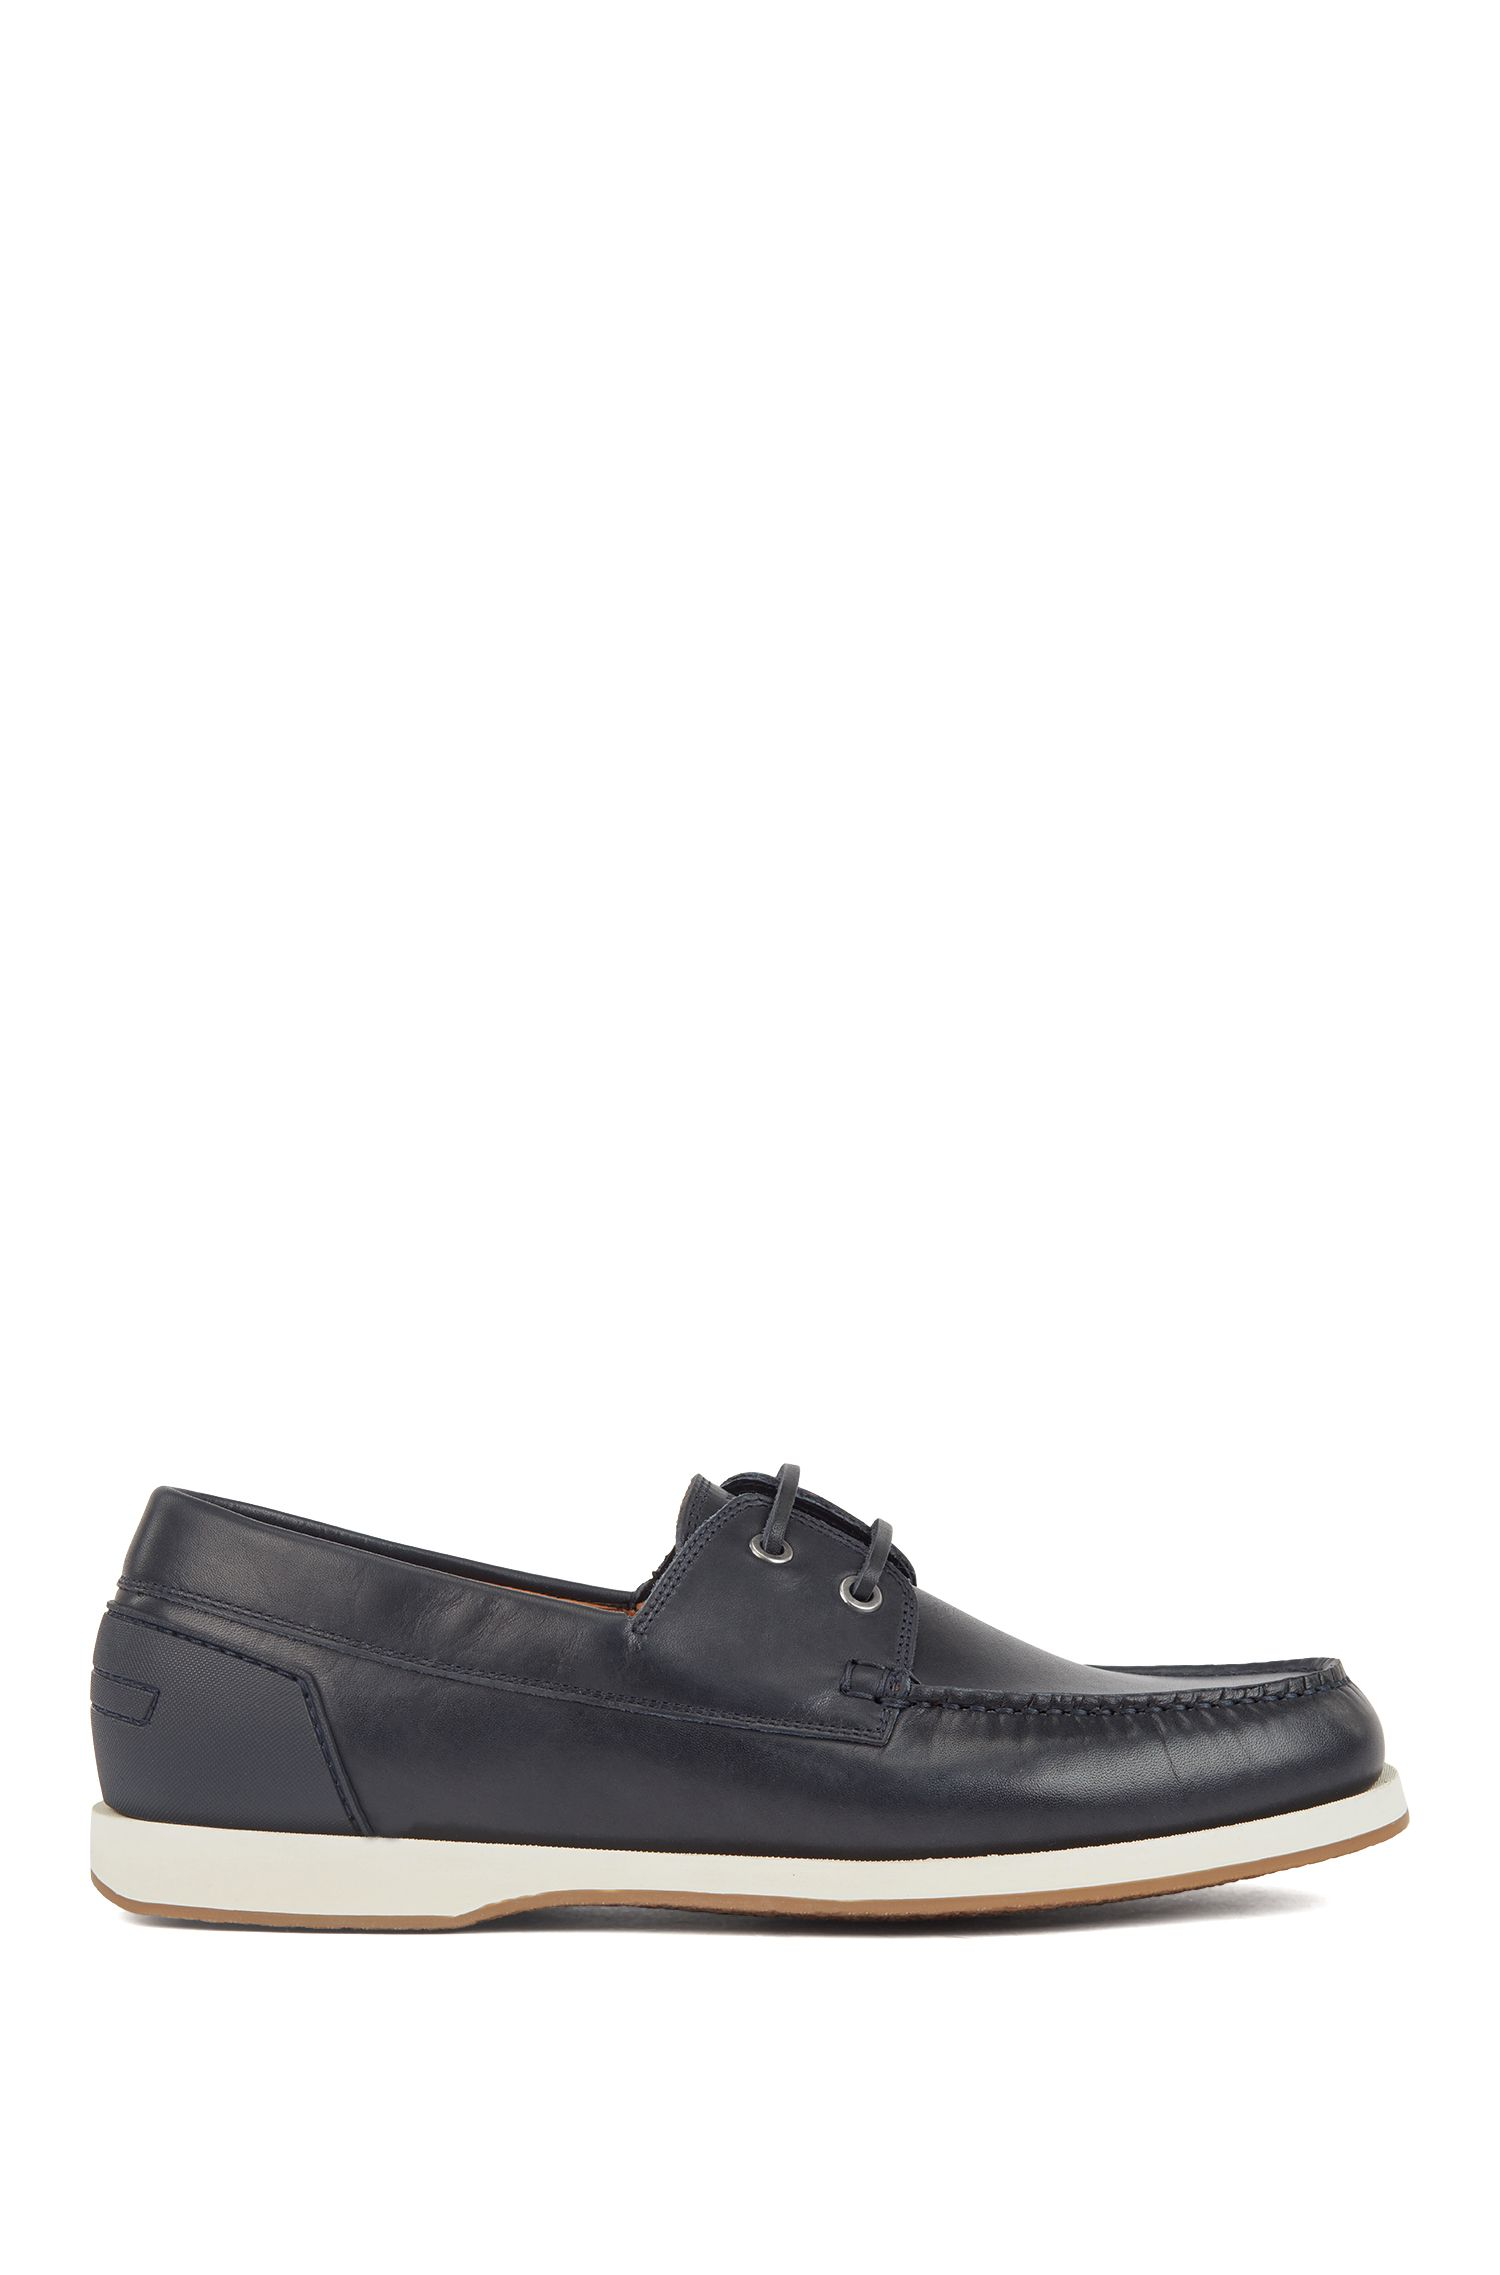 Leather moccasins with contrast sole and rubberised heel, Dark Blue